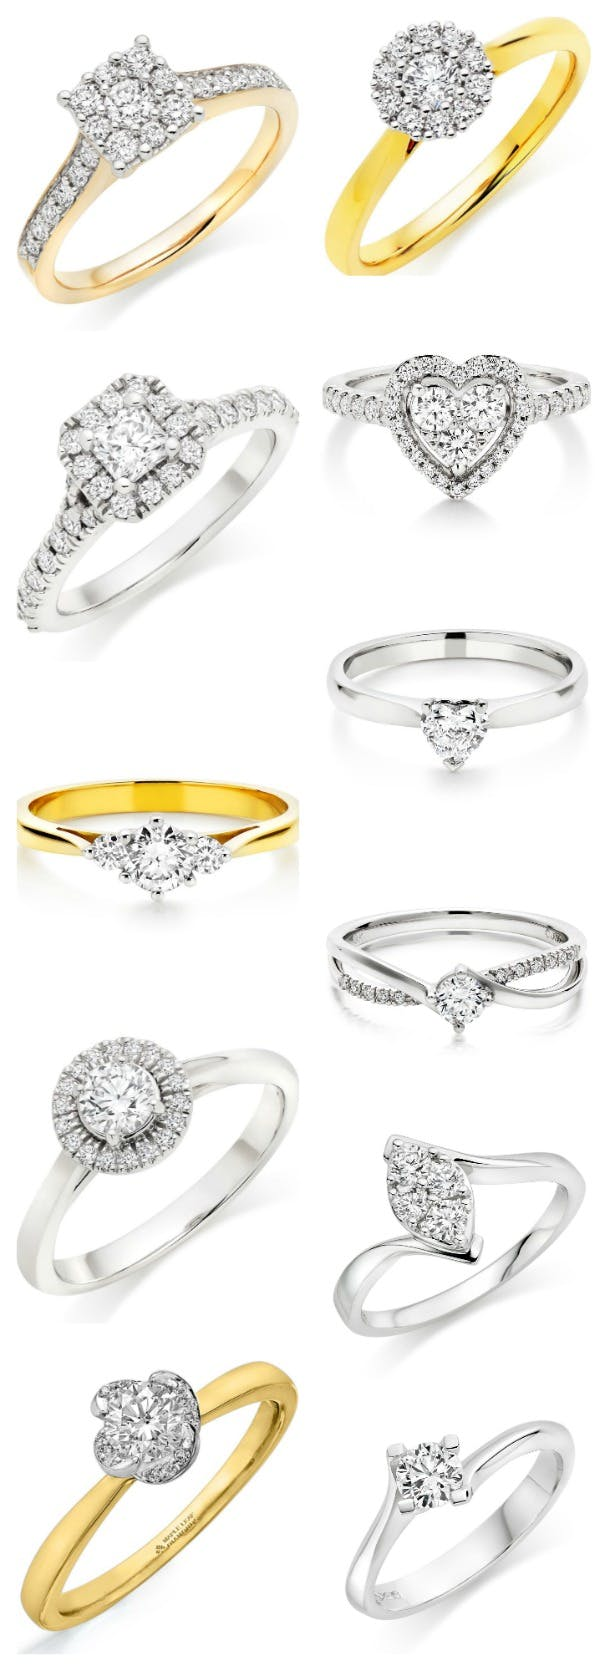 Engagement rings by Beaverbooks and Fraser Hart | Confetti.co.uk